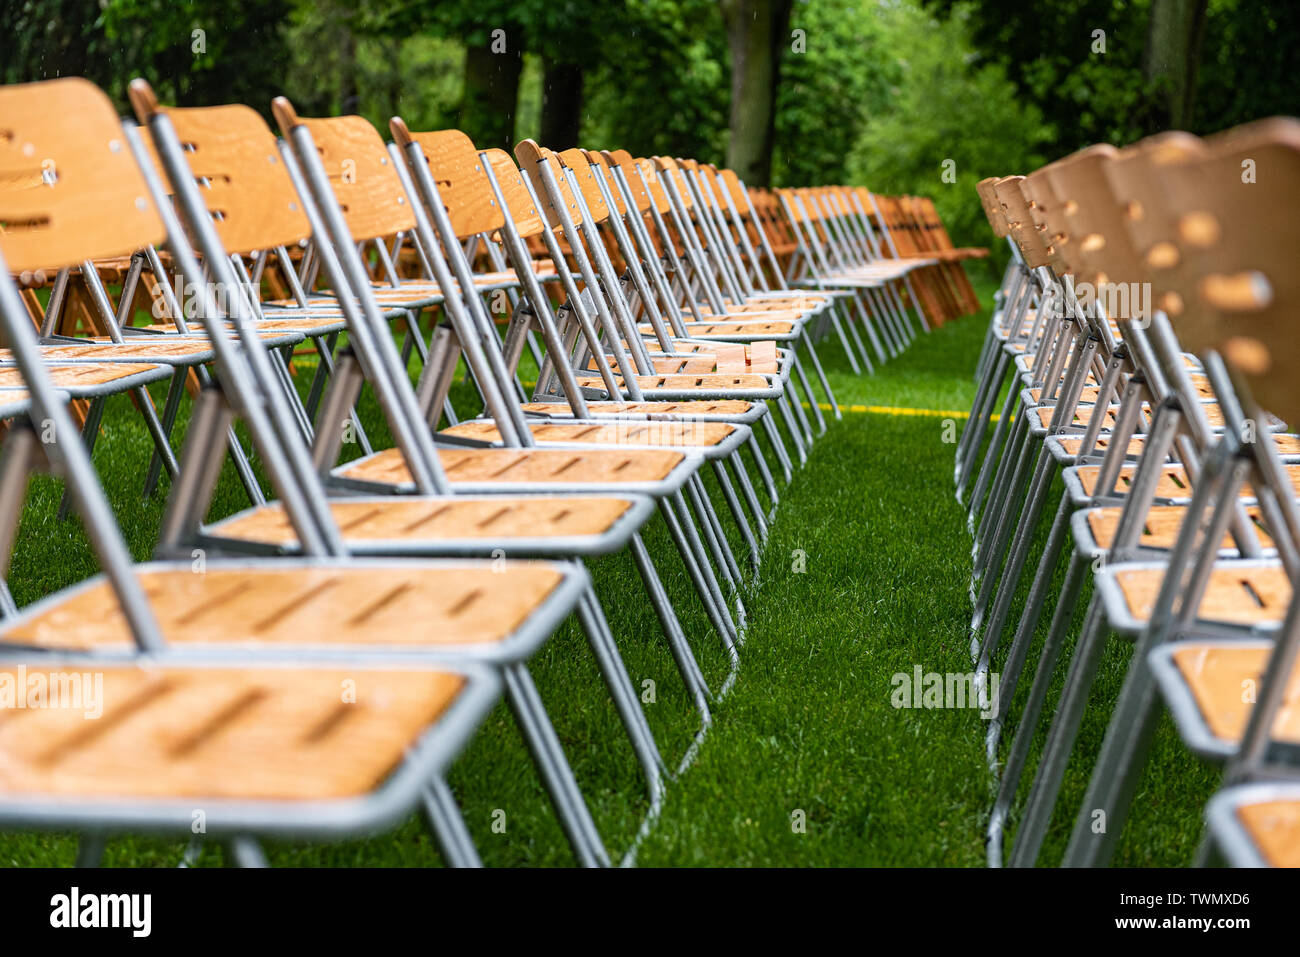 Wooden chairs close-up stand outside in the park in the rain. Empty auditorium, green grass, trees and chairs with water drops. - Stock Image